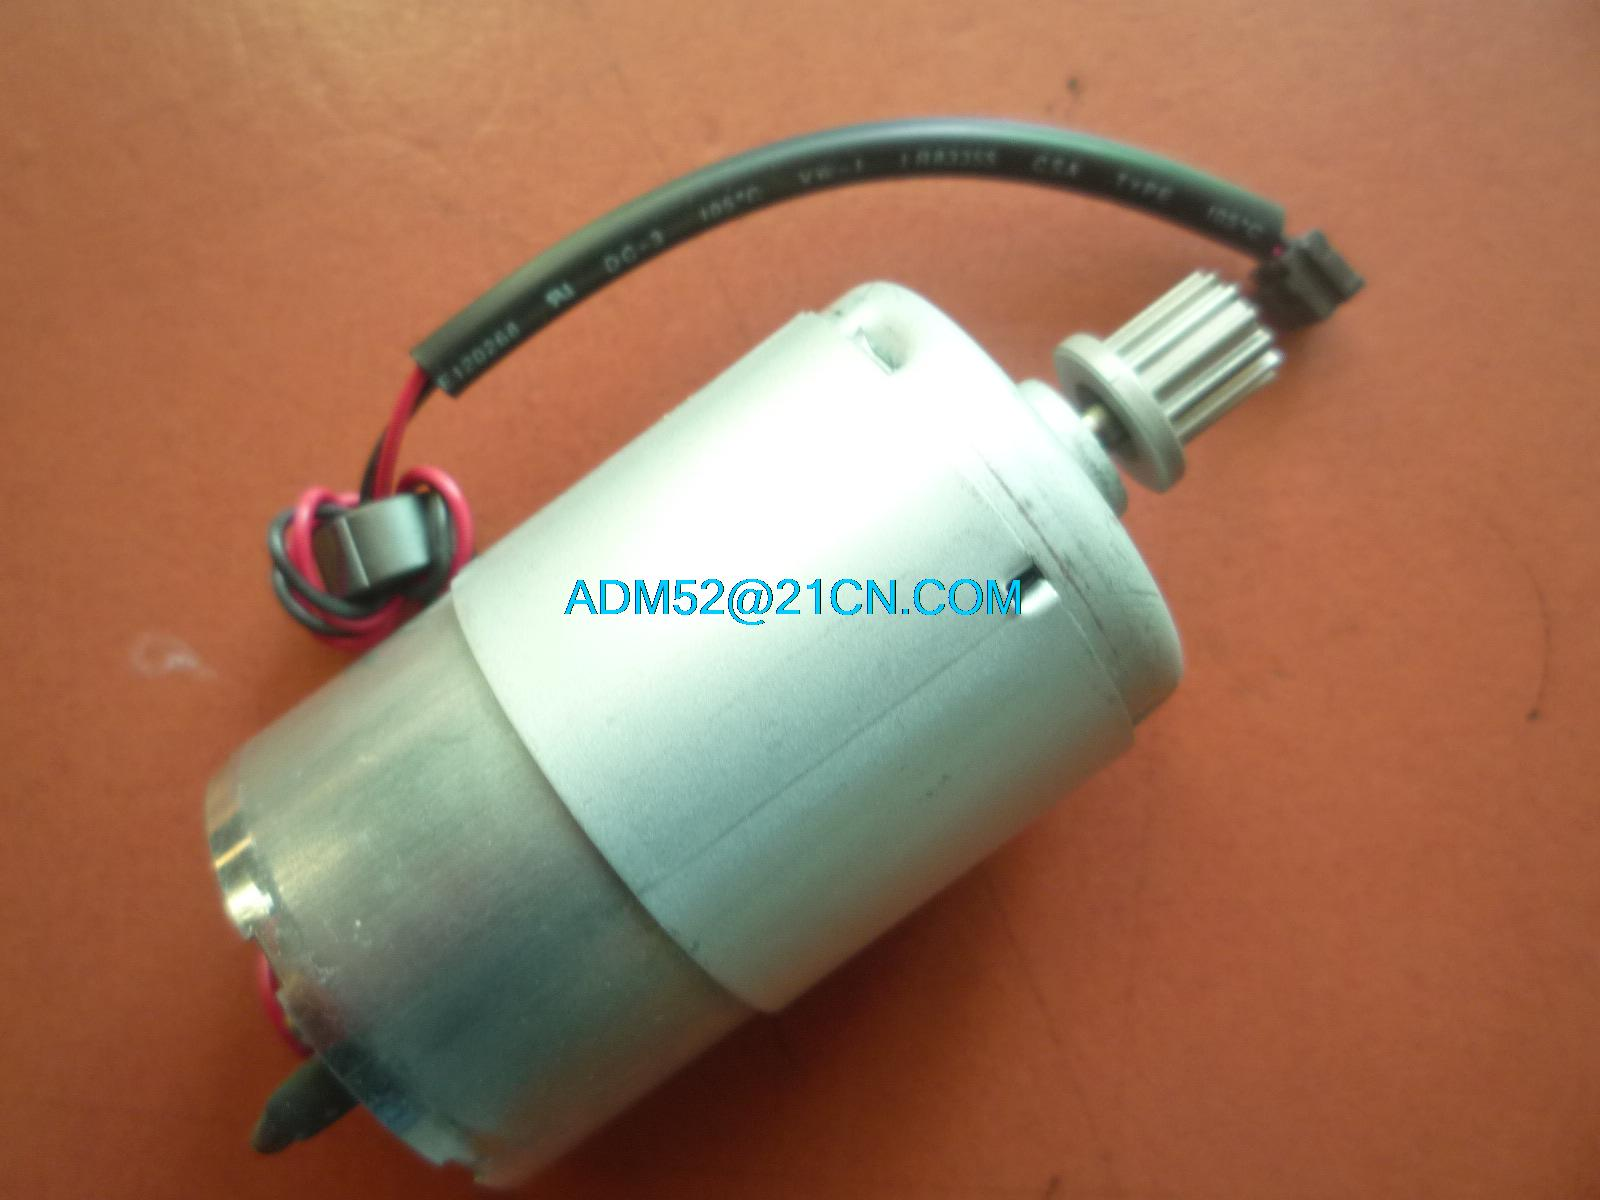 New and original CR MOTOR for Epson L1800 SC-P408 SP-R2000 SP-R1800 SP-R1900 SP-R2880 SP-R2400 SP-R2000S MOTOR ASSY PF акустические кабели tchernov cable special xs sc sp bn 4 35m